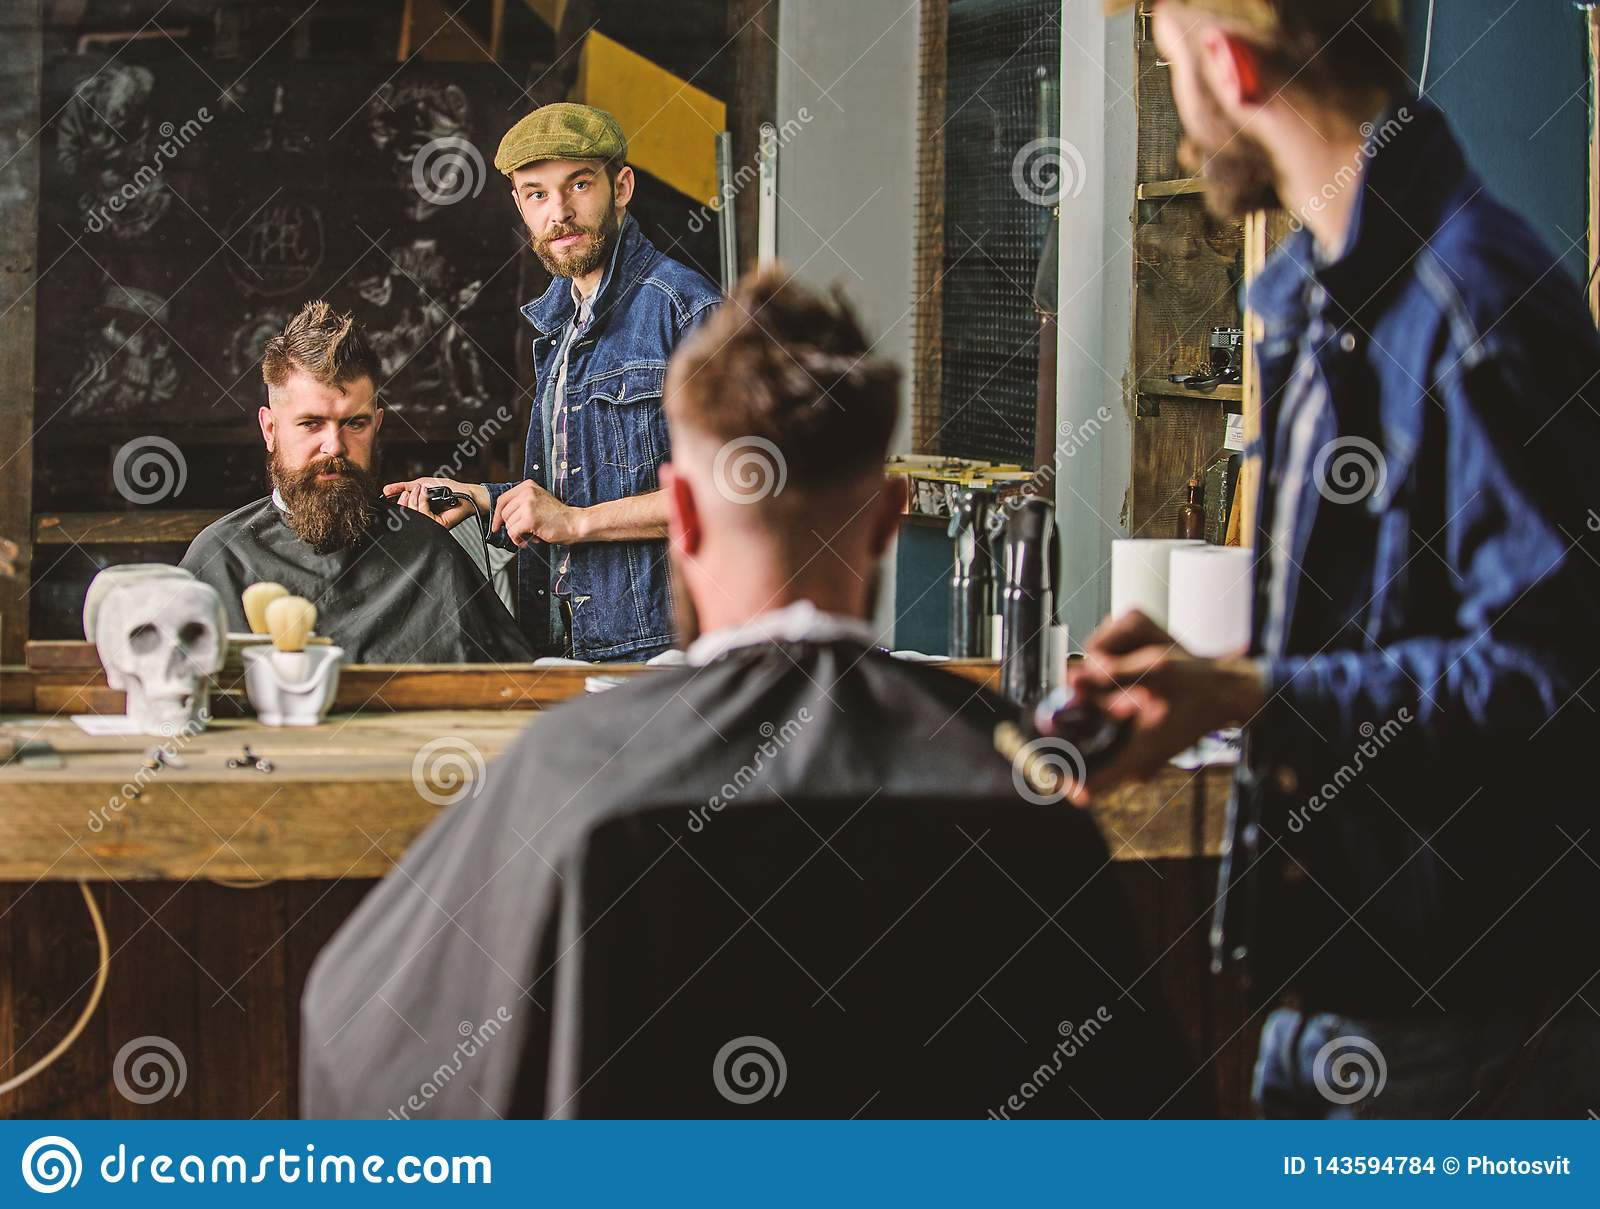 Barber preparing hair clipper for bearded man, barbershop background. Hipster lifestyle concept. Hipster client covered